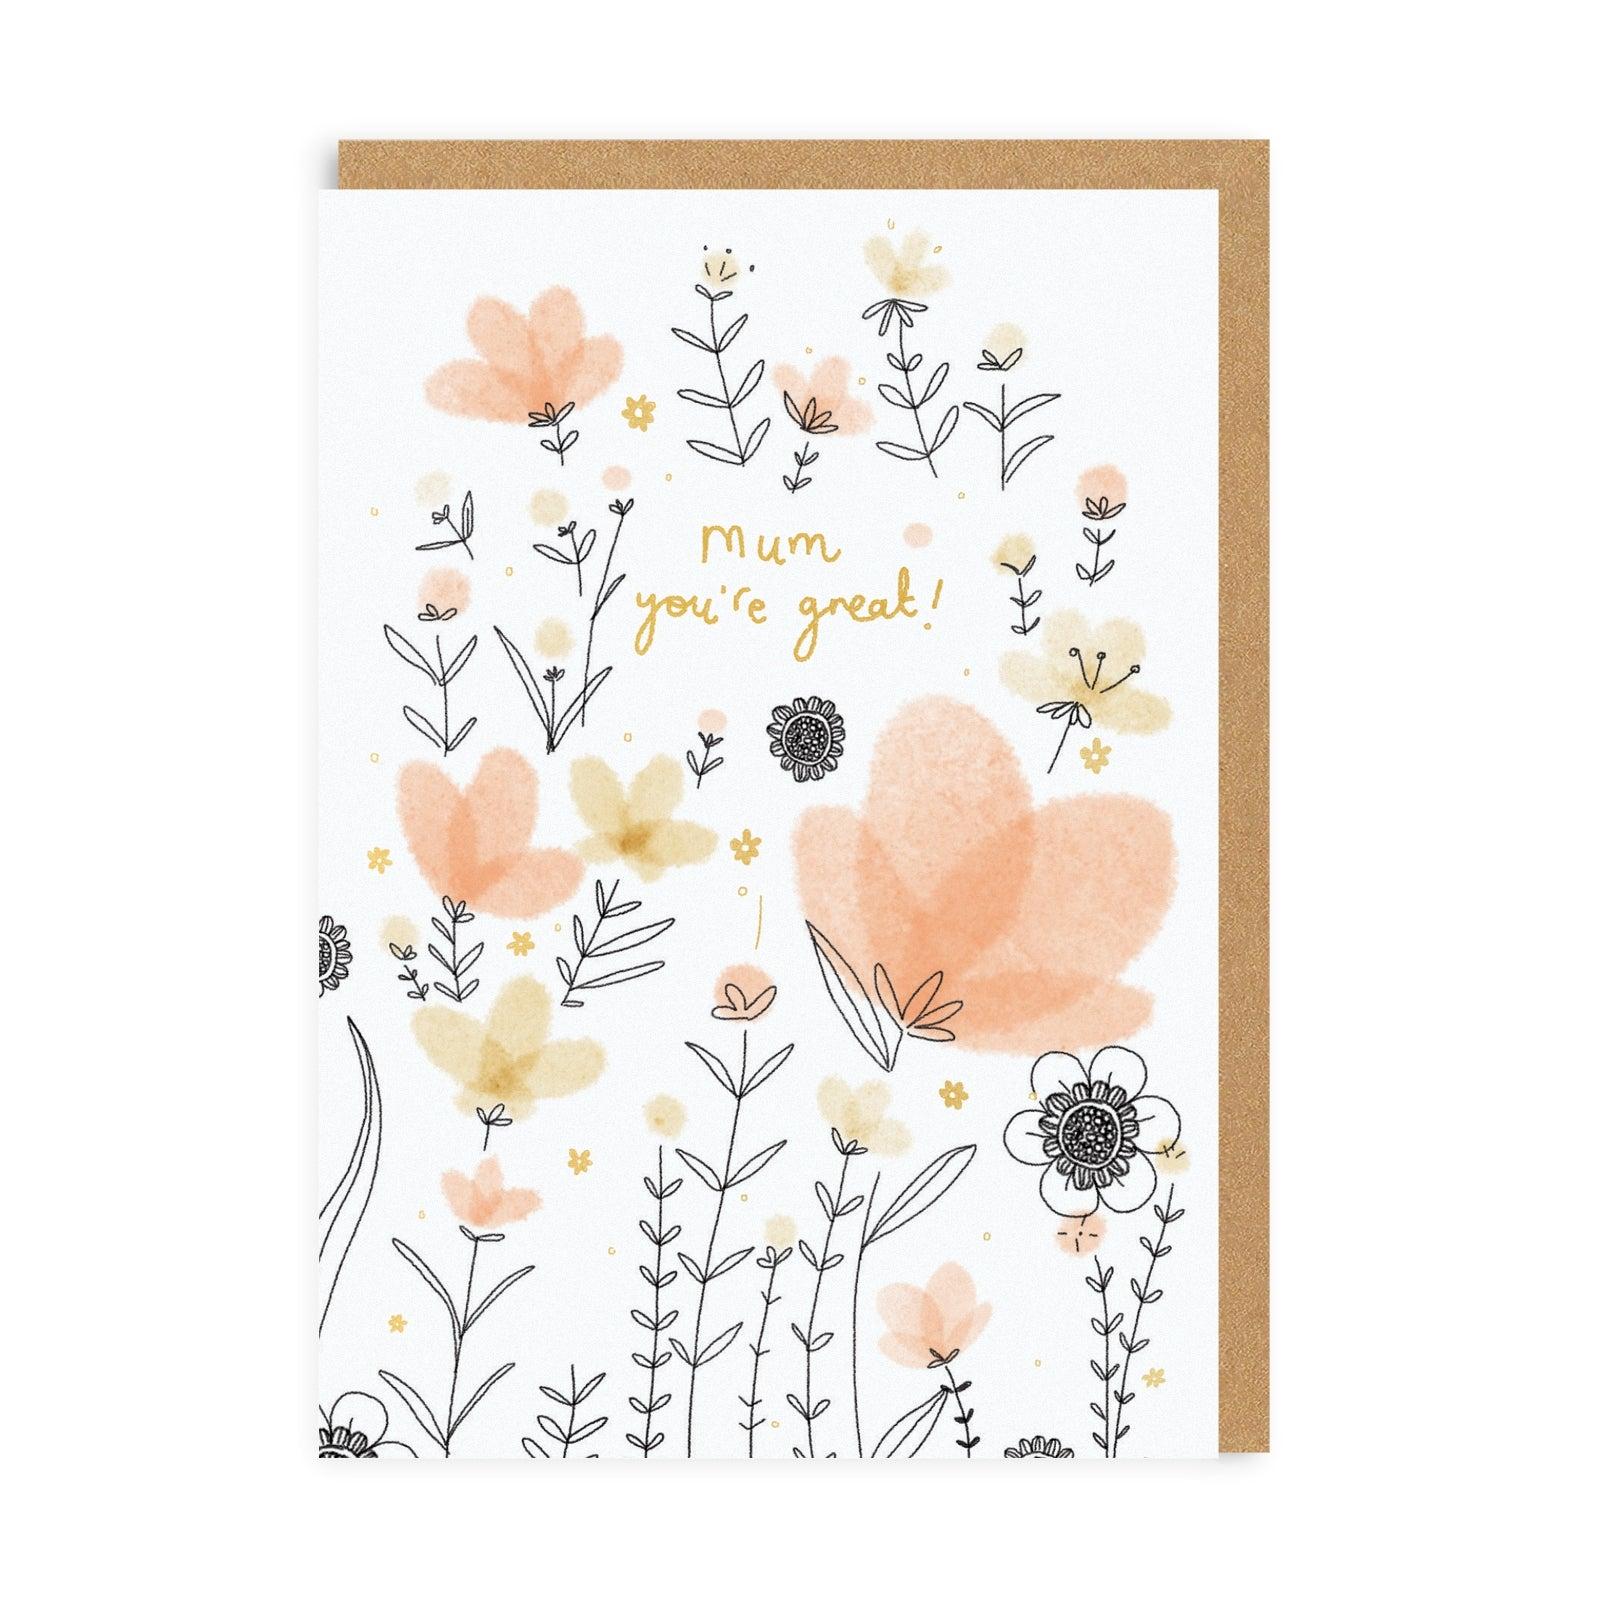 Mum, You're Great! Greeting Card